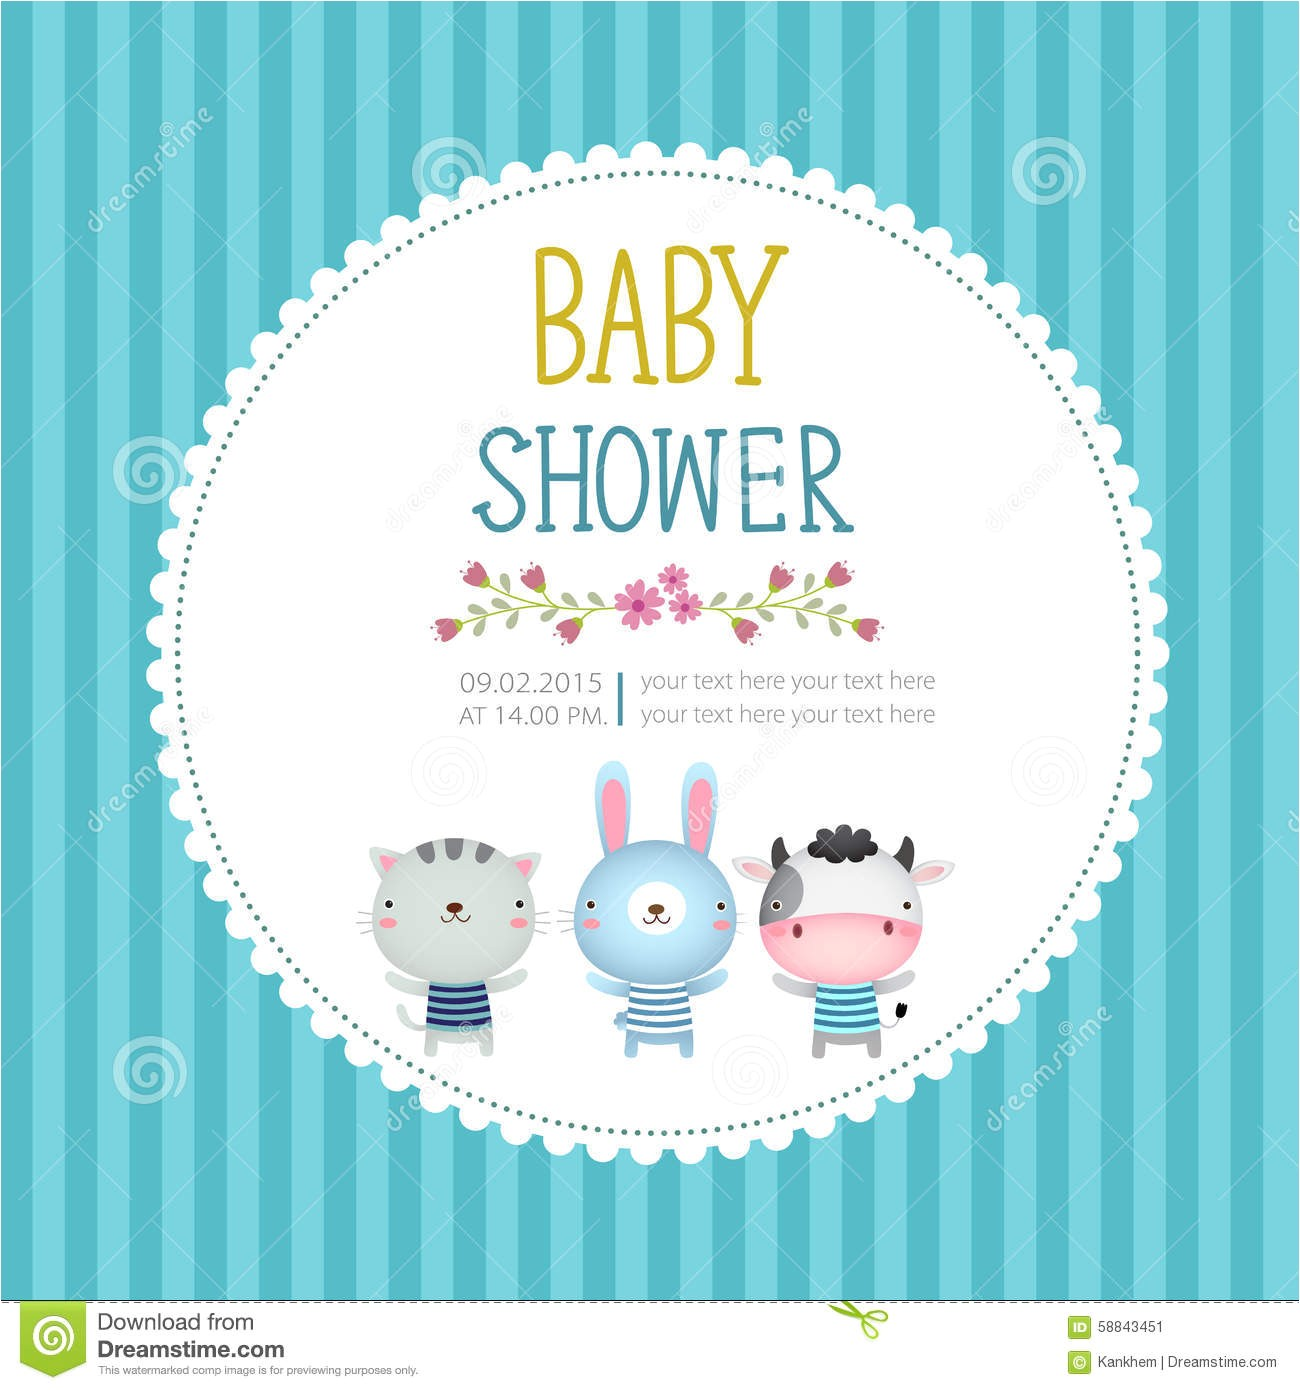 wholesale baby shower invitations